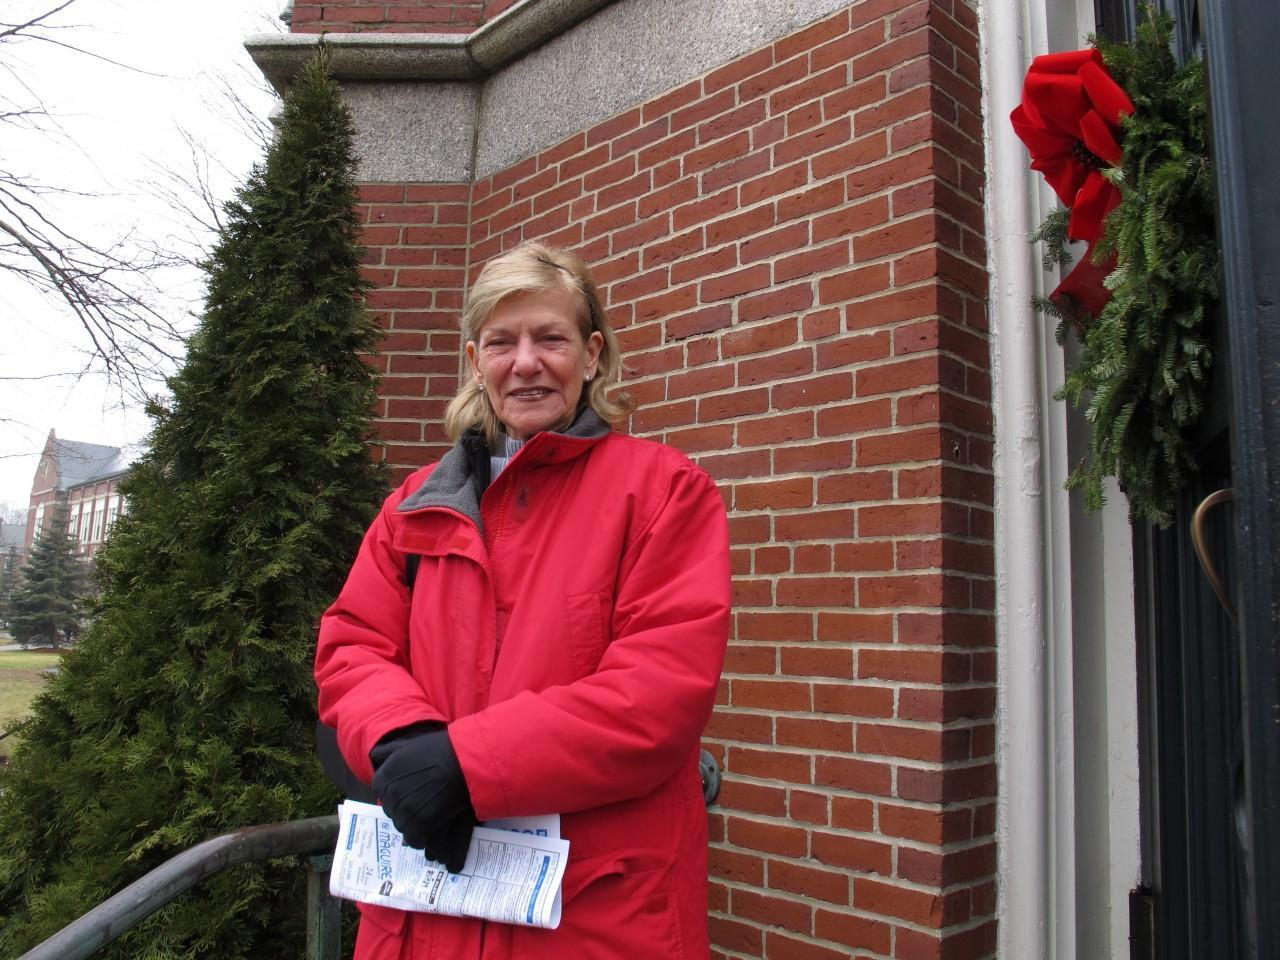 Our Lady Help of Christians parishioner Mary Cacioppo is supportive of the collaborative but worries there will be fewer Masses. (Monica Brady-Myerov/WBUR)